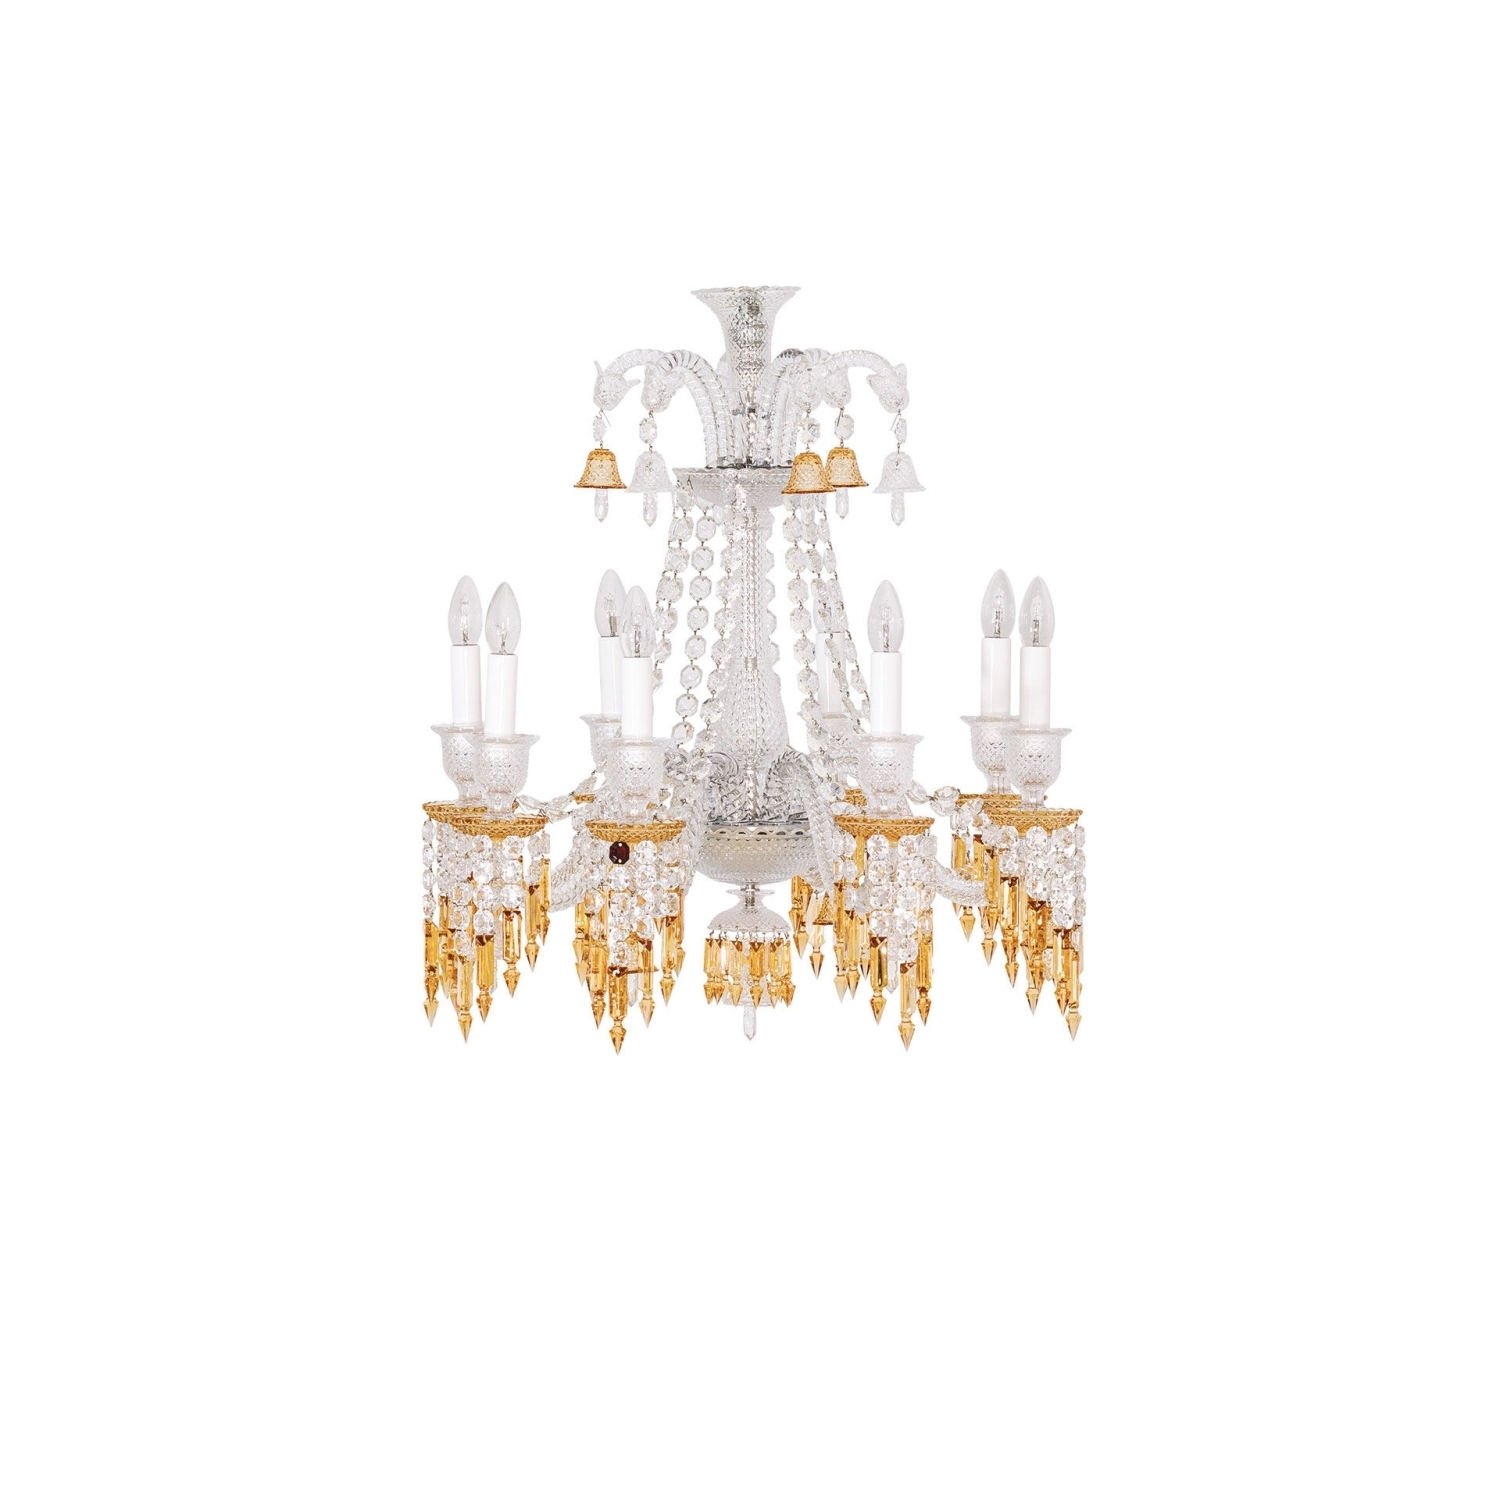 Chandelier 8L Baccarat Zenith Charleston 2809404 With Regard To Well Known Short Chandelier Lights (View 3 of 20)